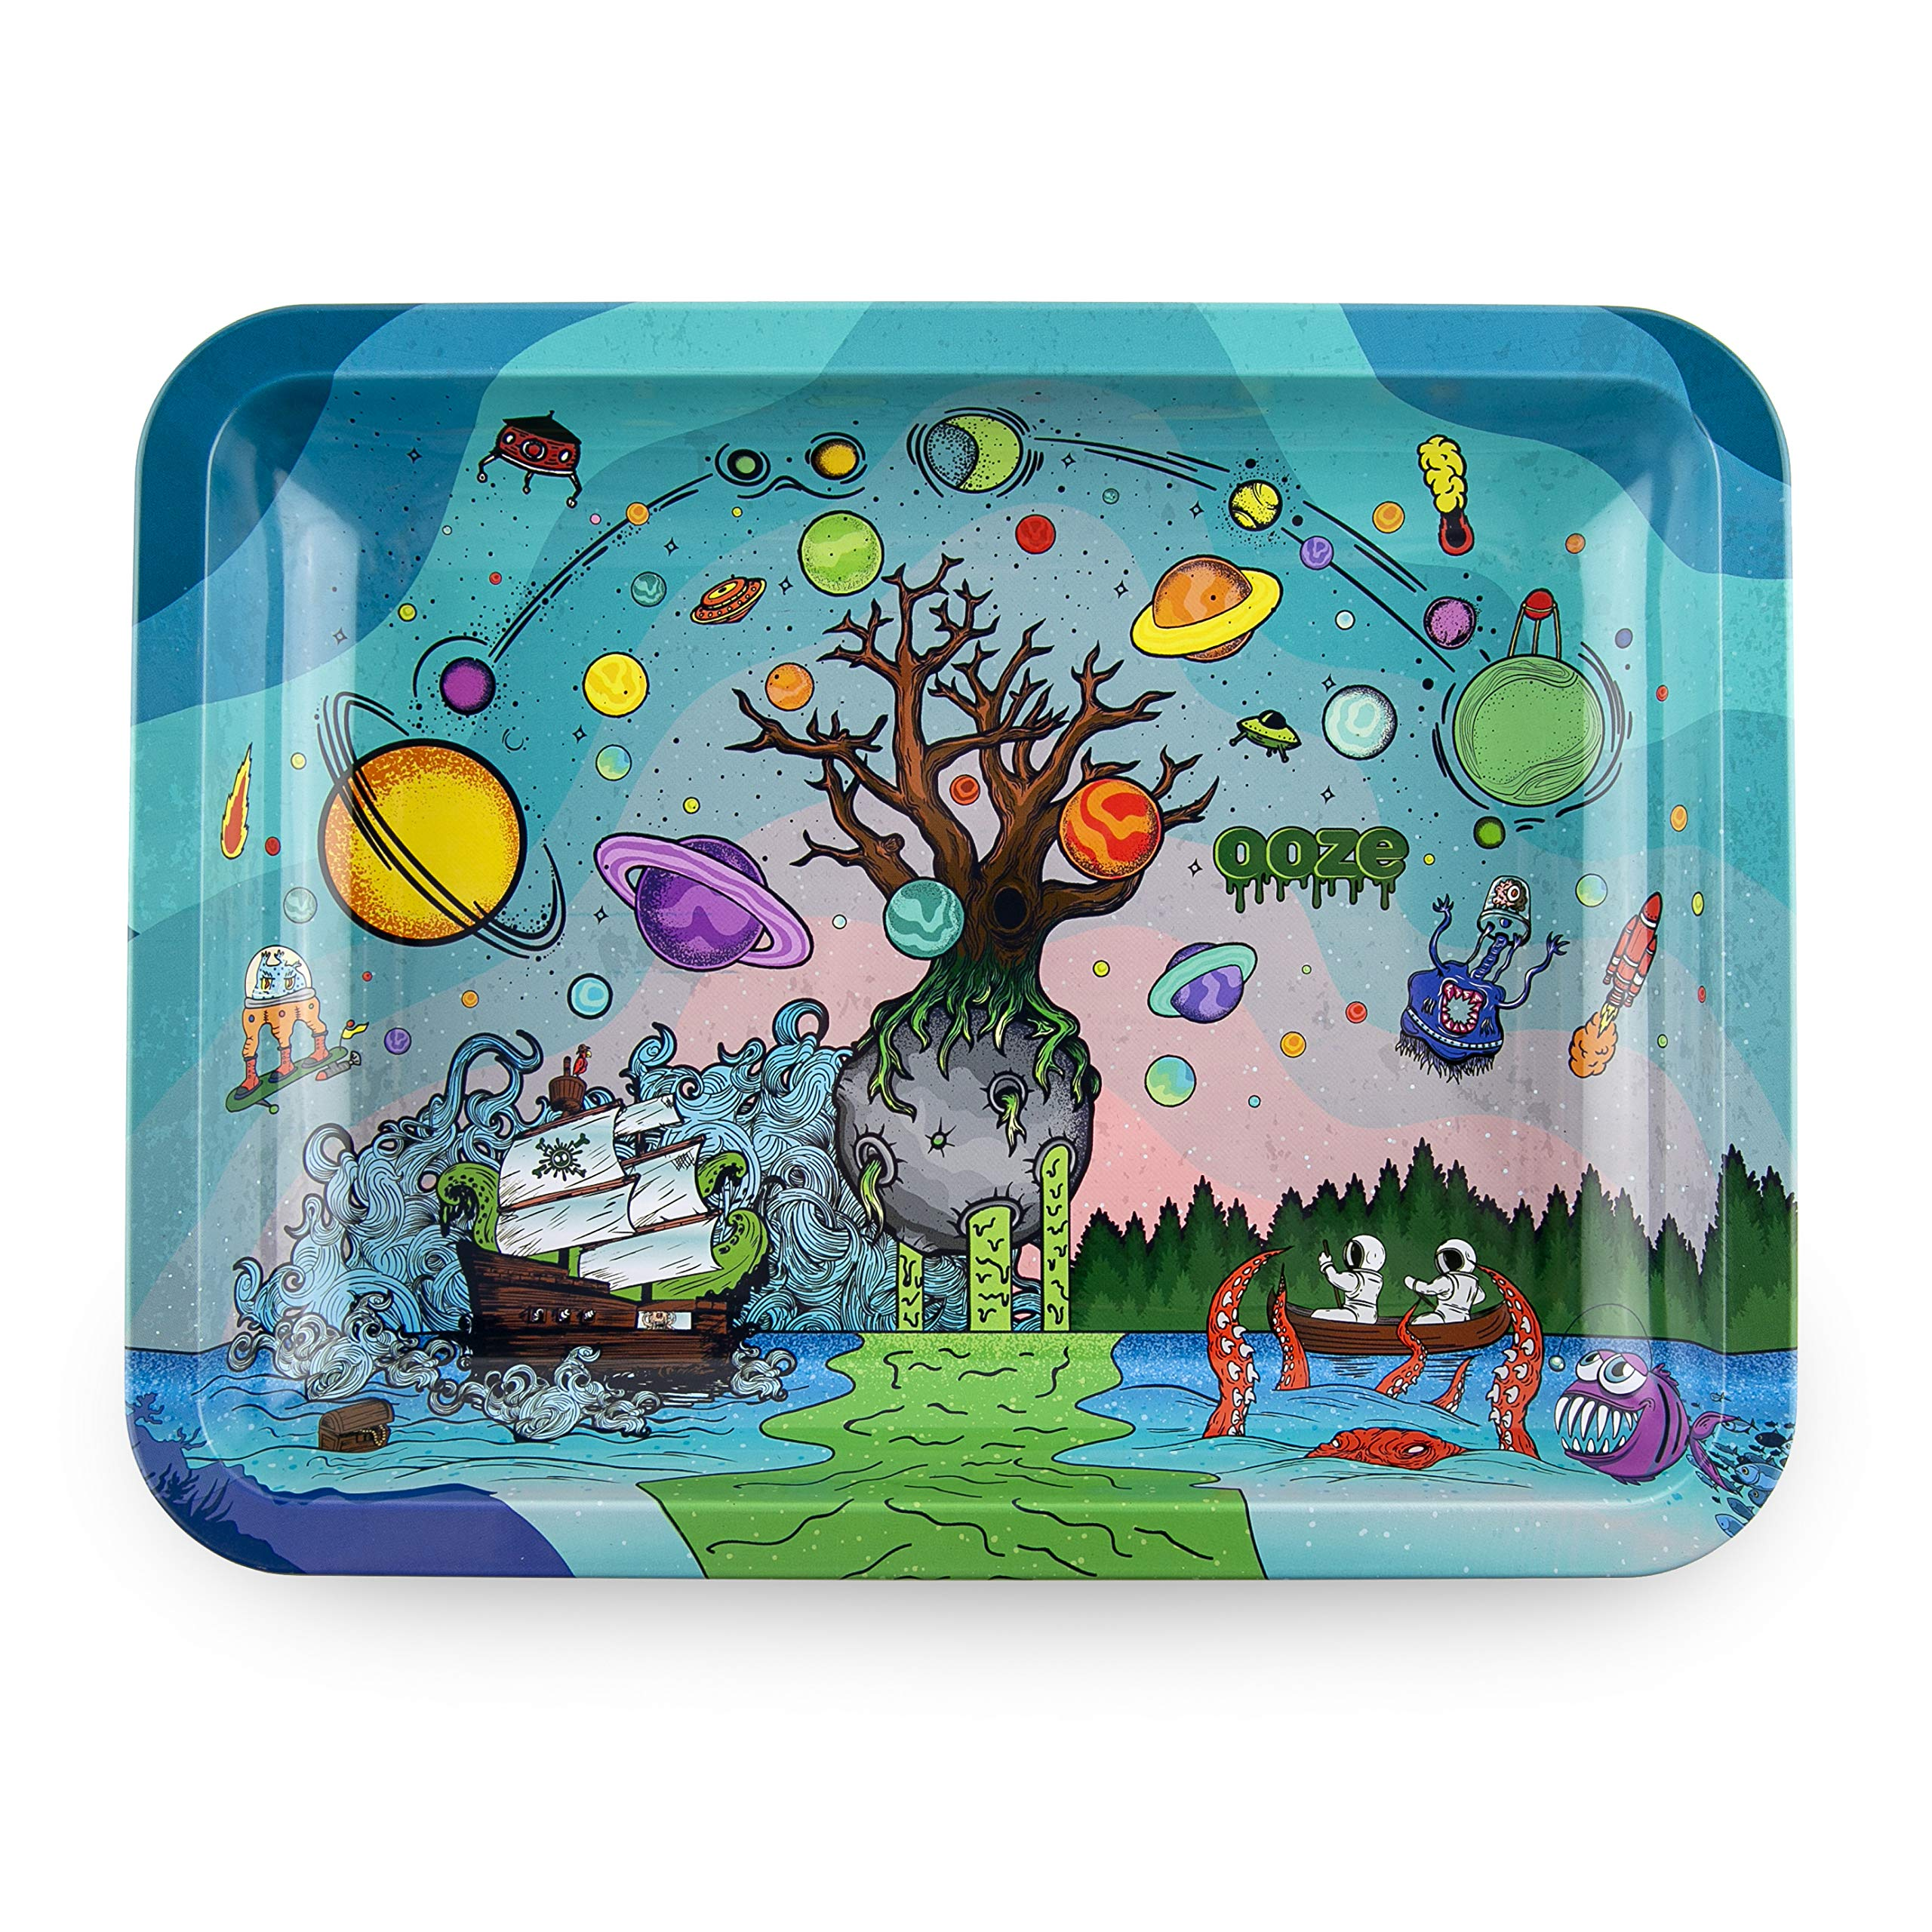 Ooze - Metal Rolling Tray - Tree of Life - (Medium) by Ooze